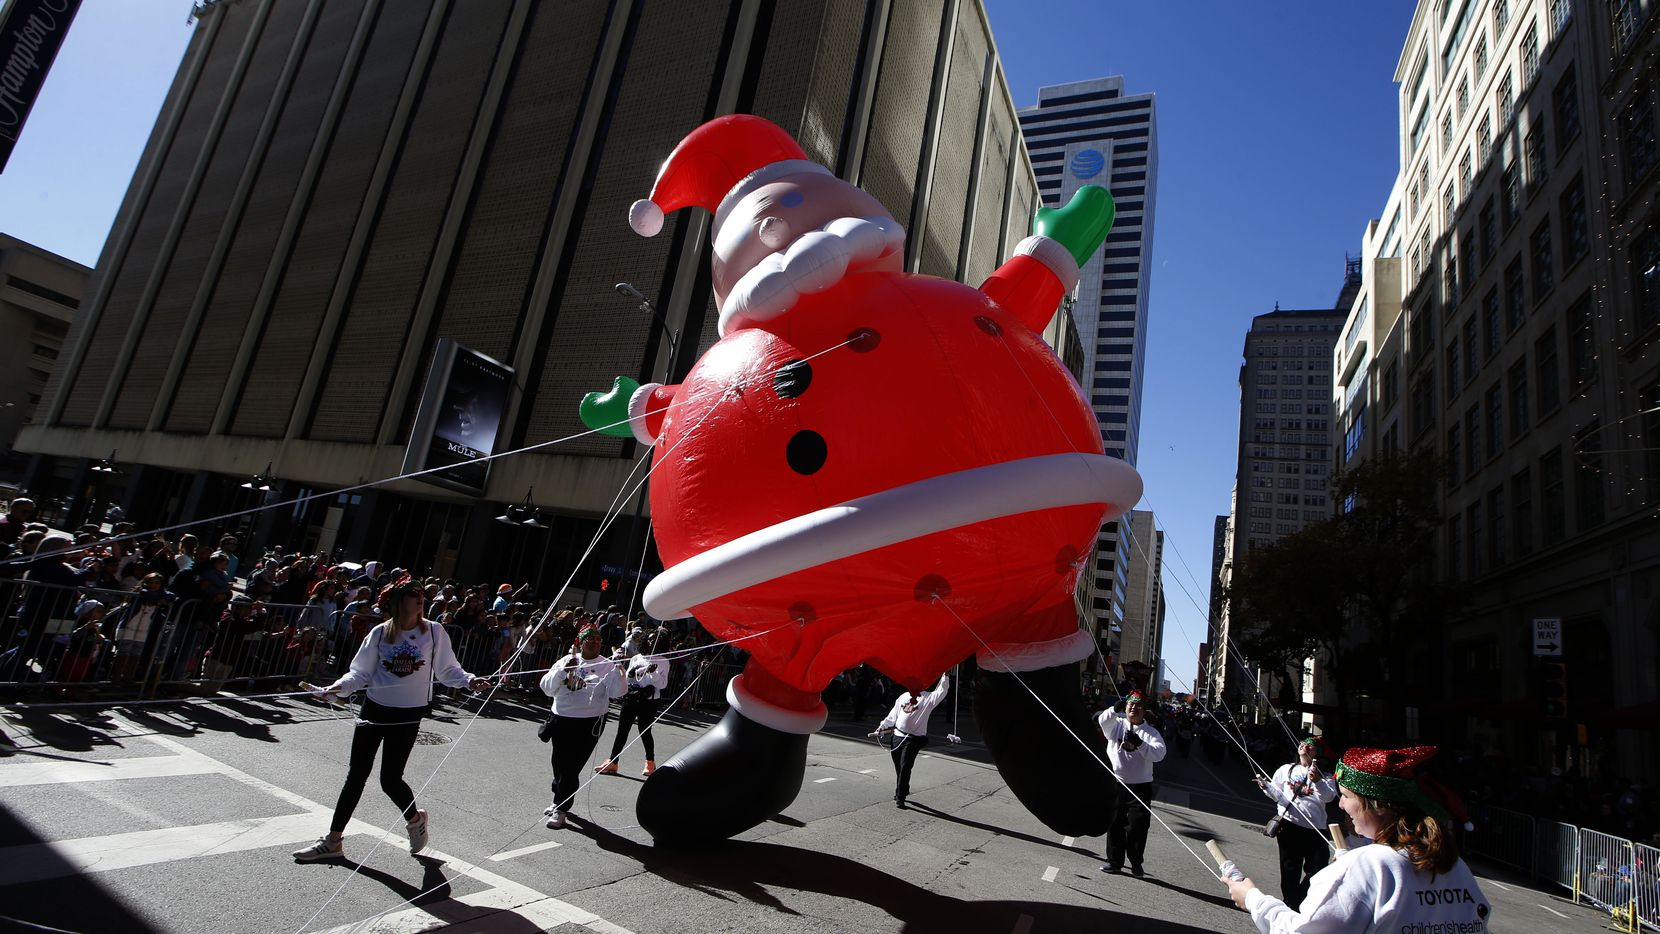 Santa the balloon has trouble staying in the air during the Dallas Holiday Parade on Dec. 1, 2018. (Nathan Hunsinger/The Dallas Morning News)